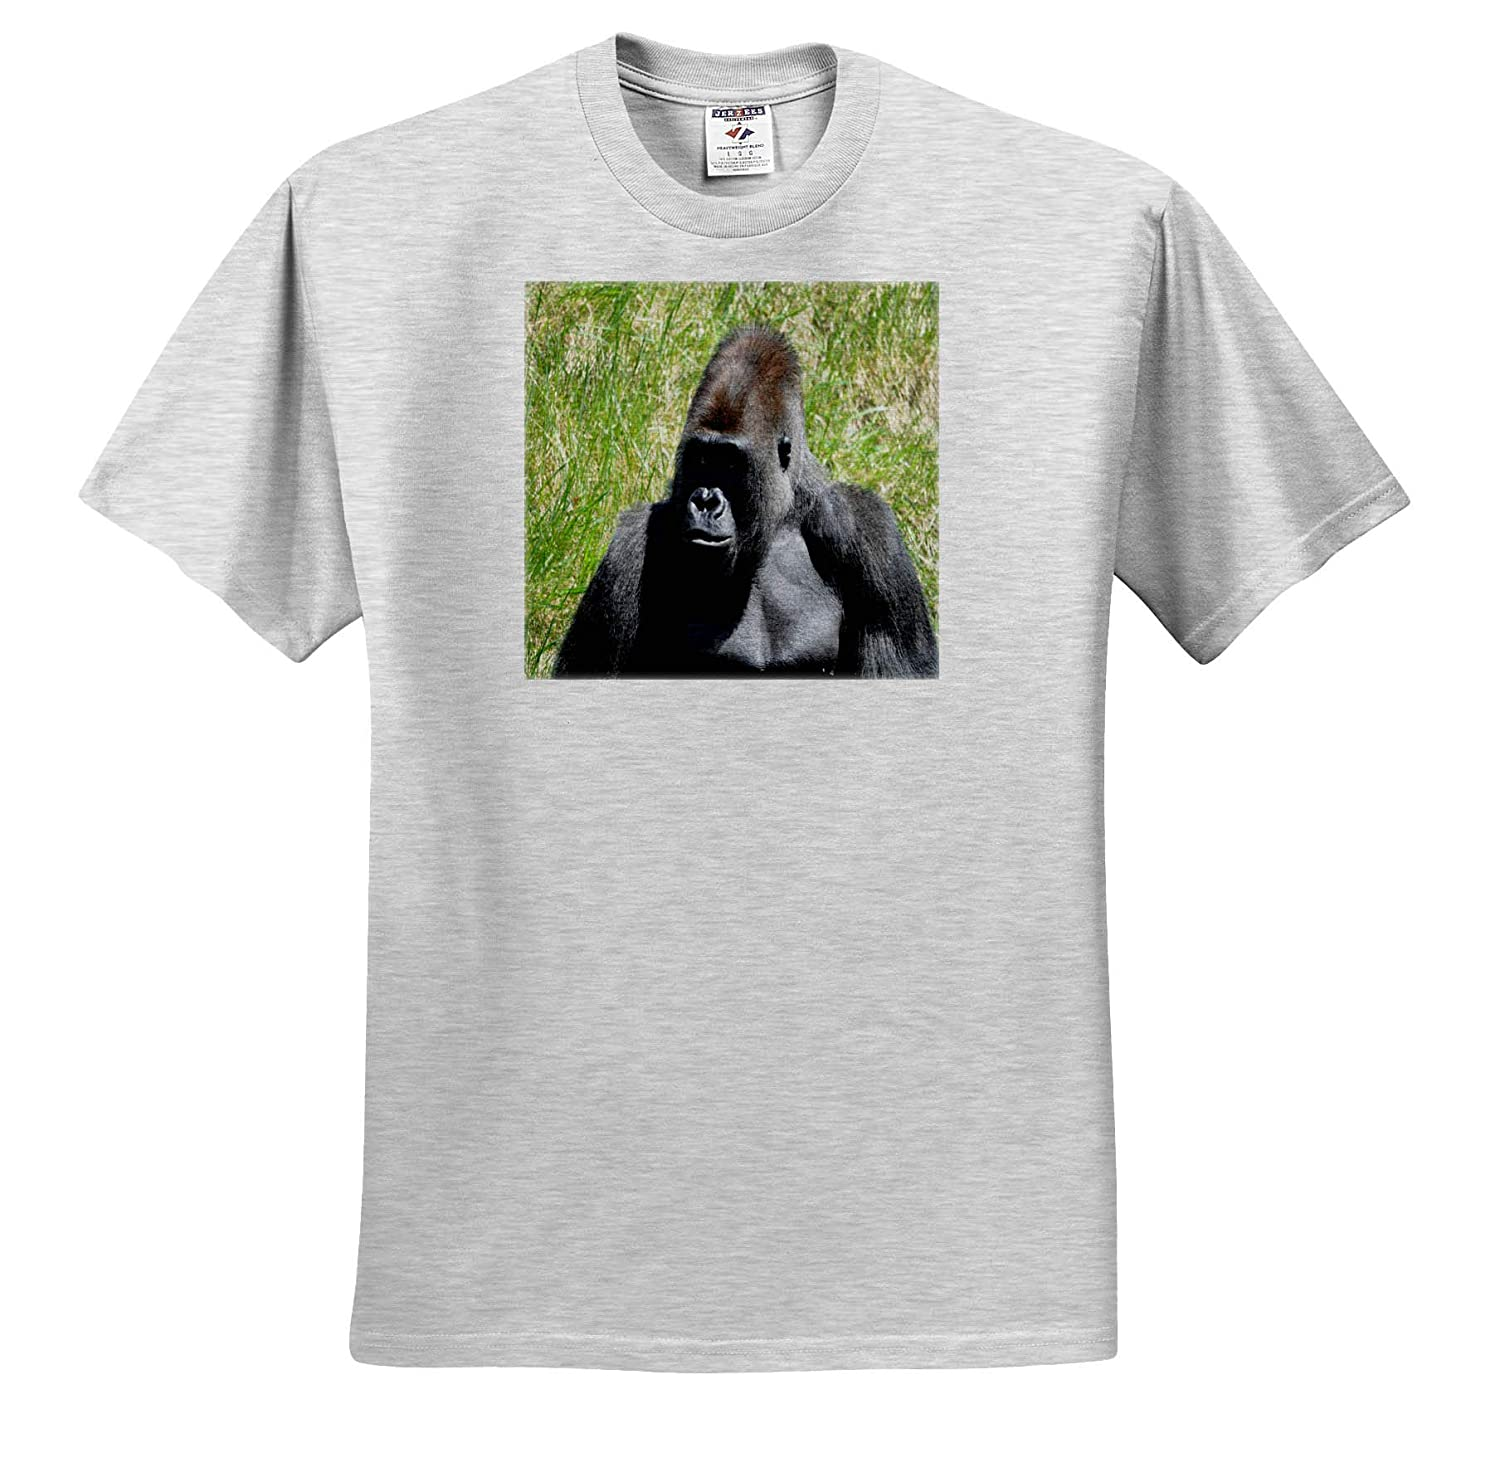 Adult T-Shirt XL Animals 3dRose Dreamscapes by Leslie Silverback Gorilla Chip ts/_314298